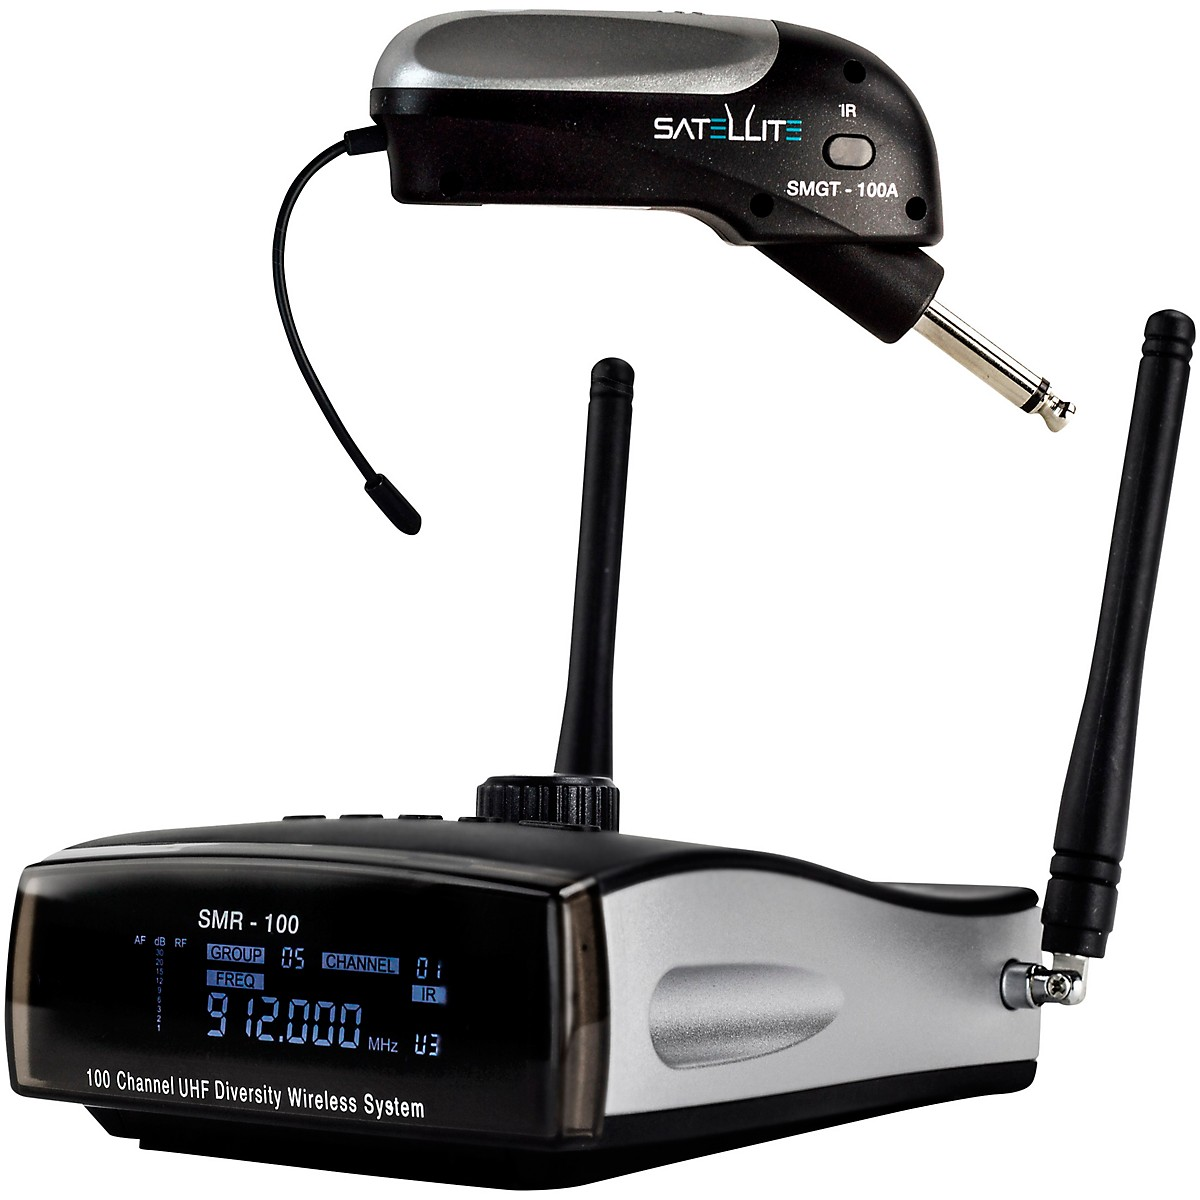 Nady Satellite SMGT-100A True Diversity Wireless Instrument System for Electric Guitar or Bass, Top Mounted